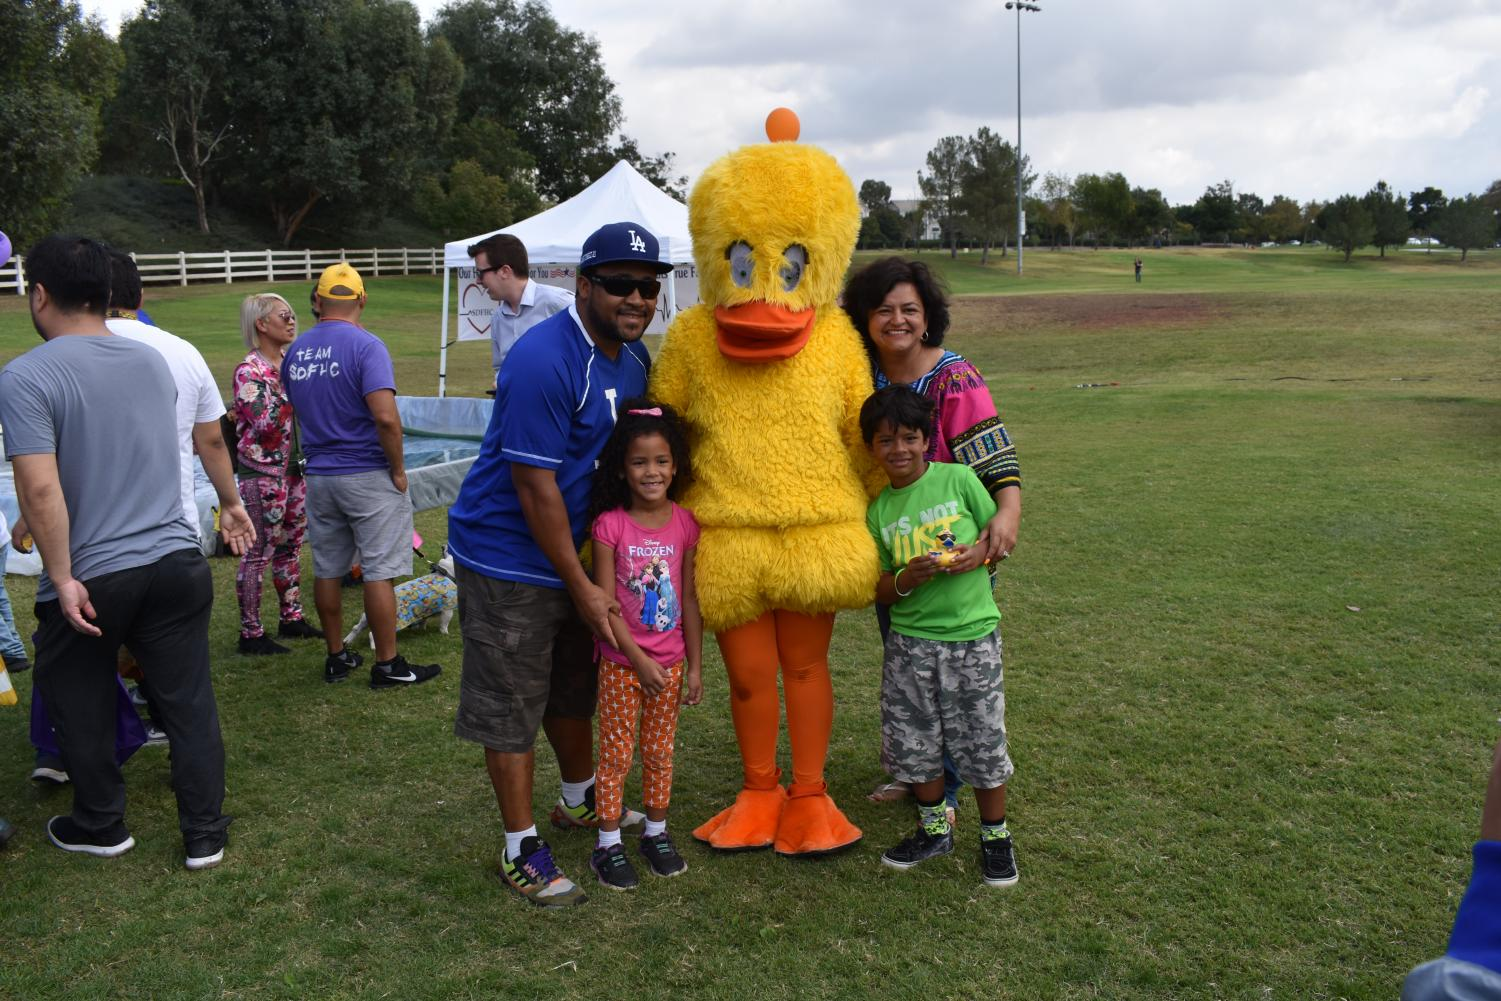 Dorothy+the+Duck+mascot+makes+the+festival+much+moire+inviting+for+families%21